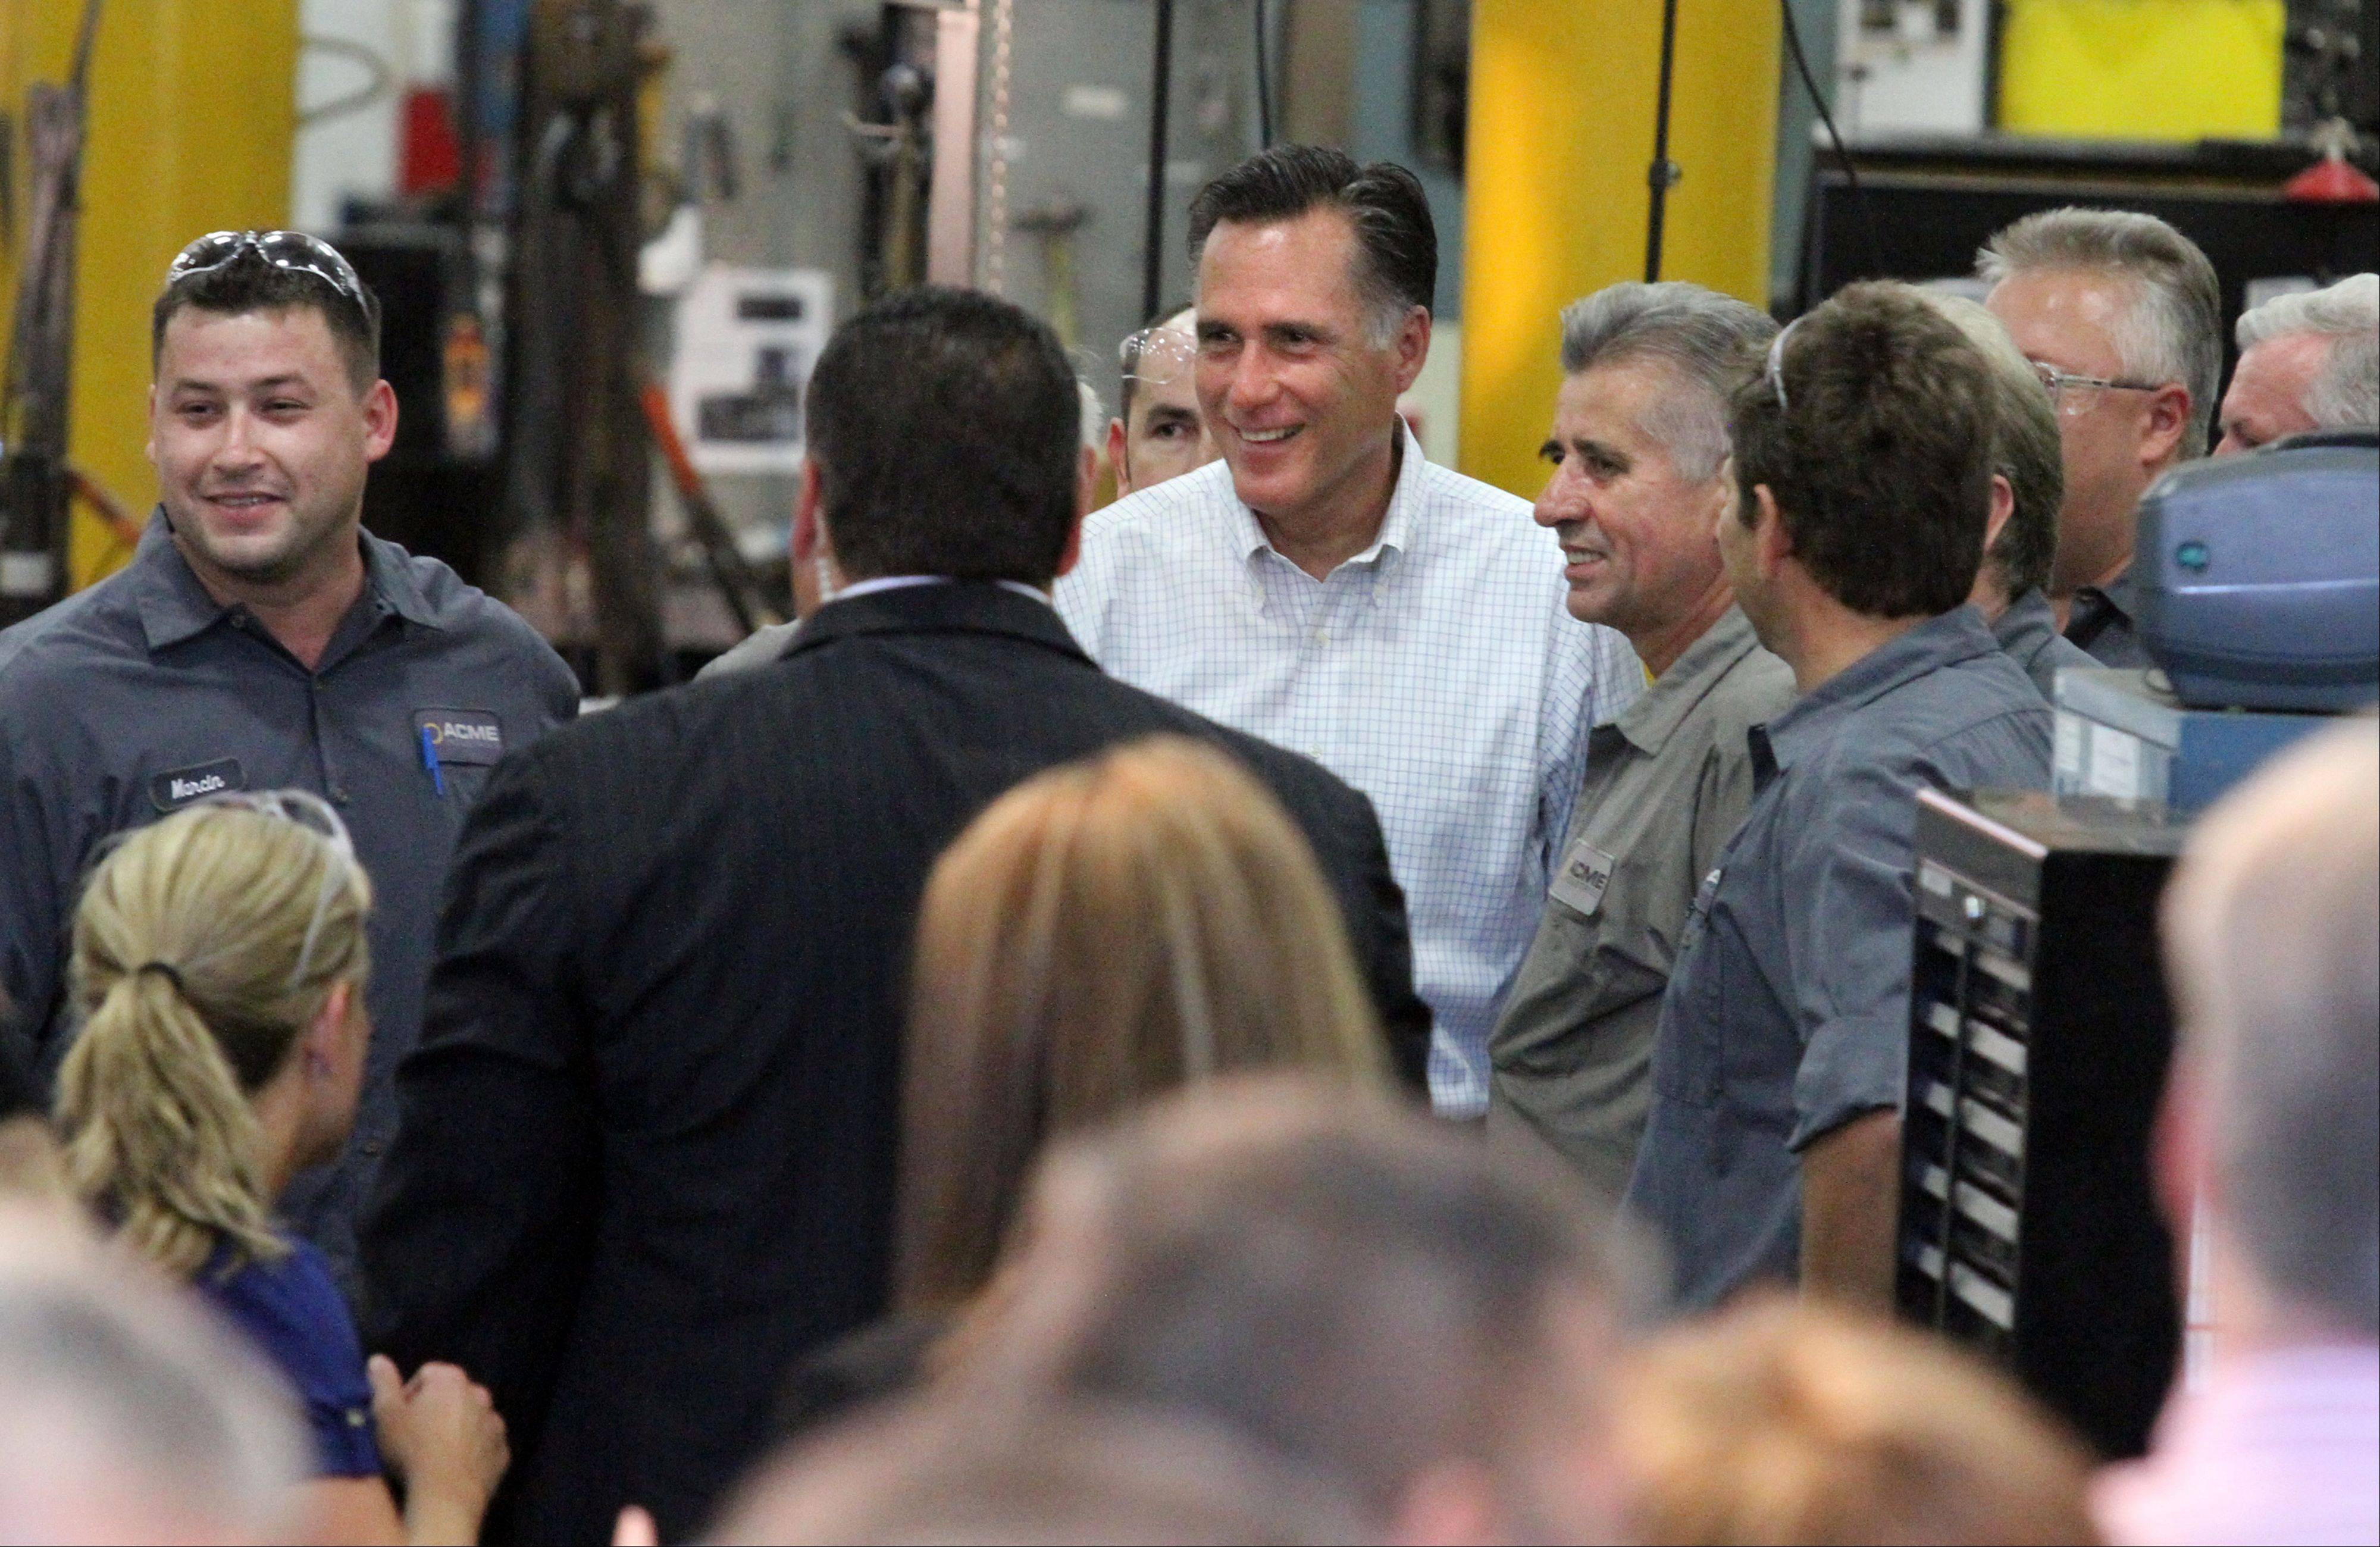 GOP Presidential candidate Mitt Romney speaks with workers at Acme Industries in Elk Grove Village on Tuesday, August 7.